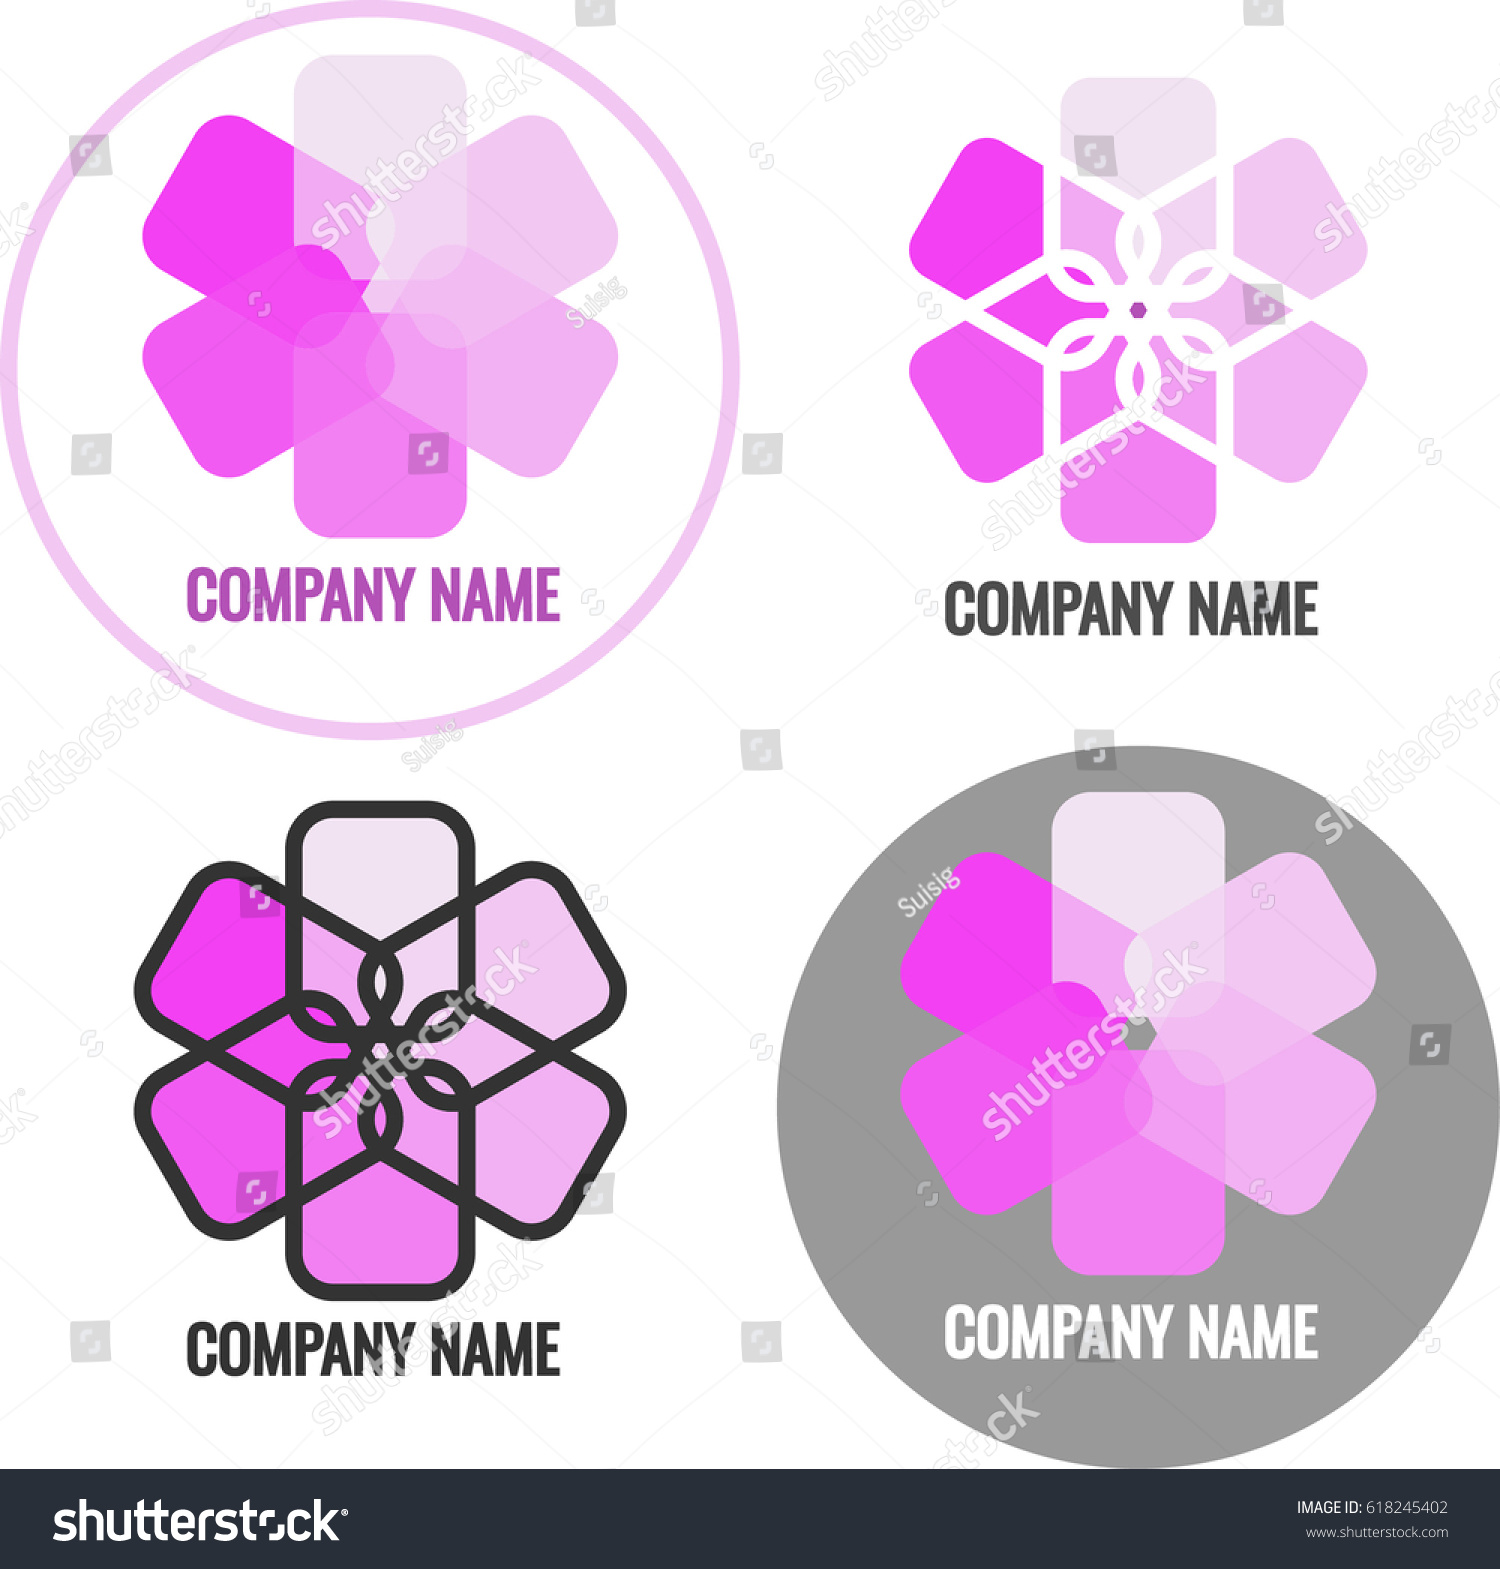 Royalty Free Stock Illustration of Creative Logo Design Abstract ...